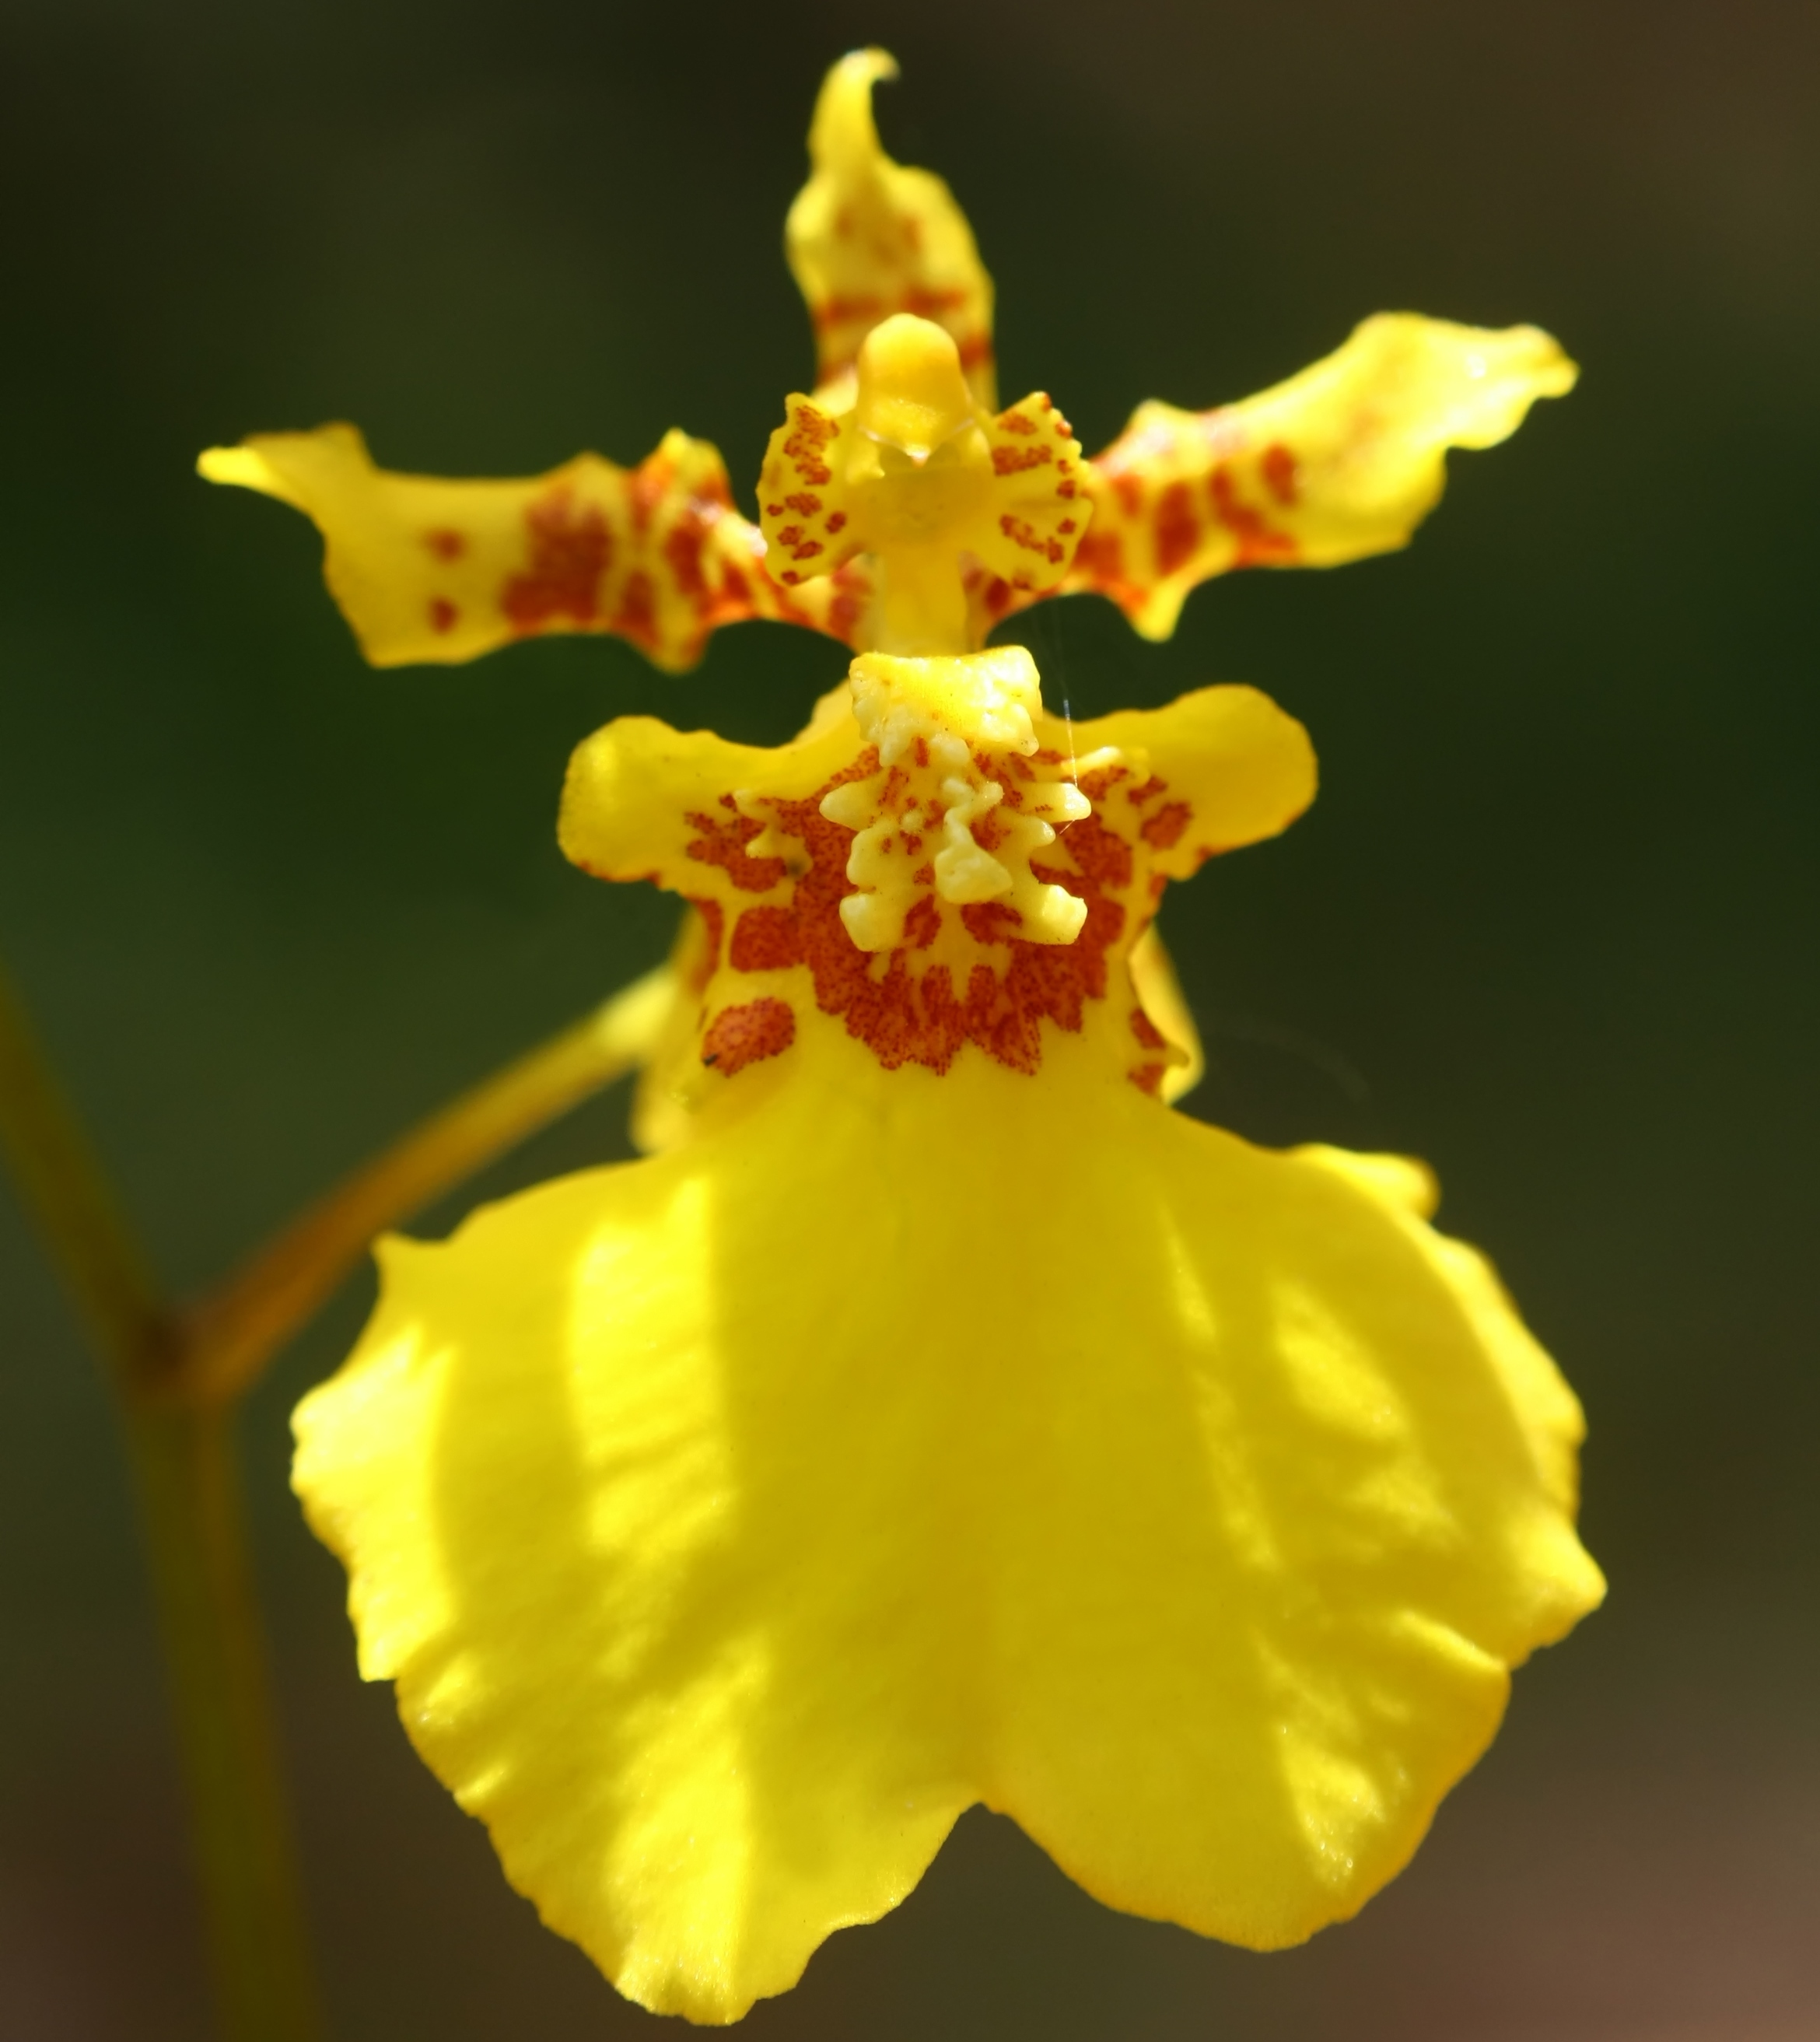 Dancing lady orchid (Oncidium sp.)